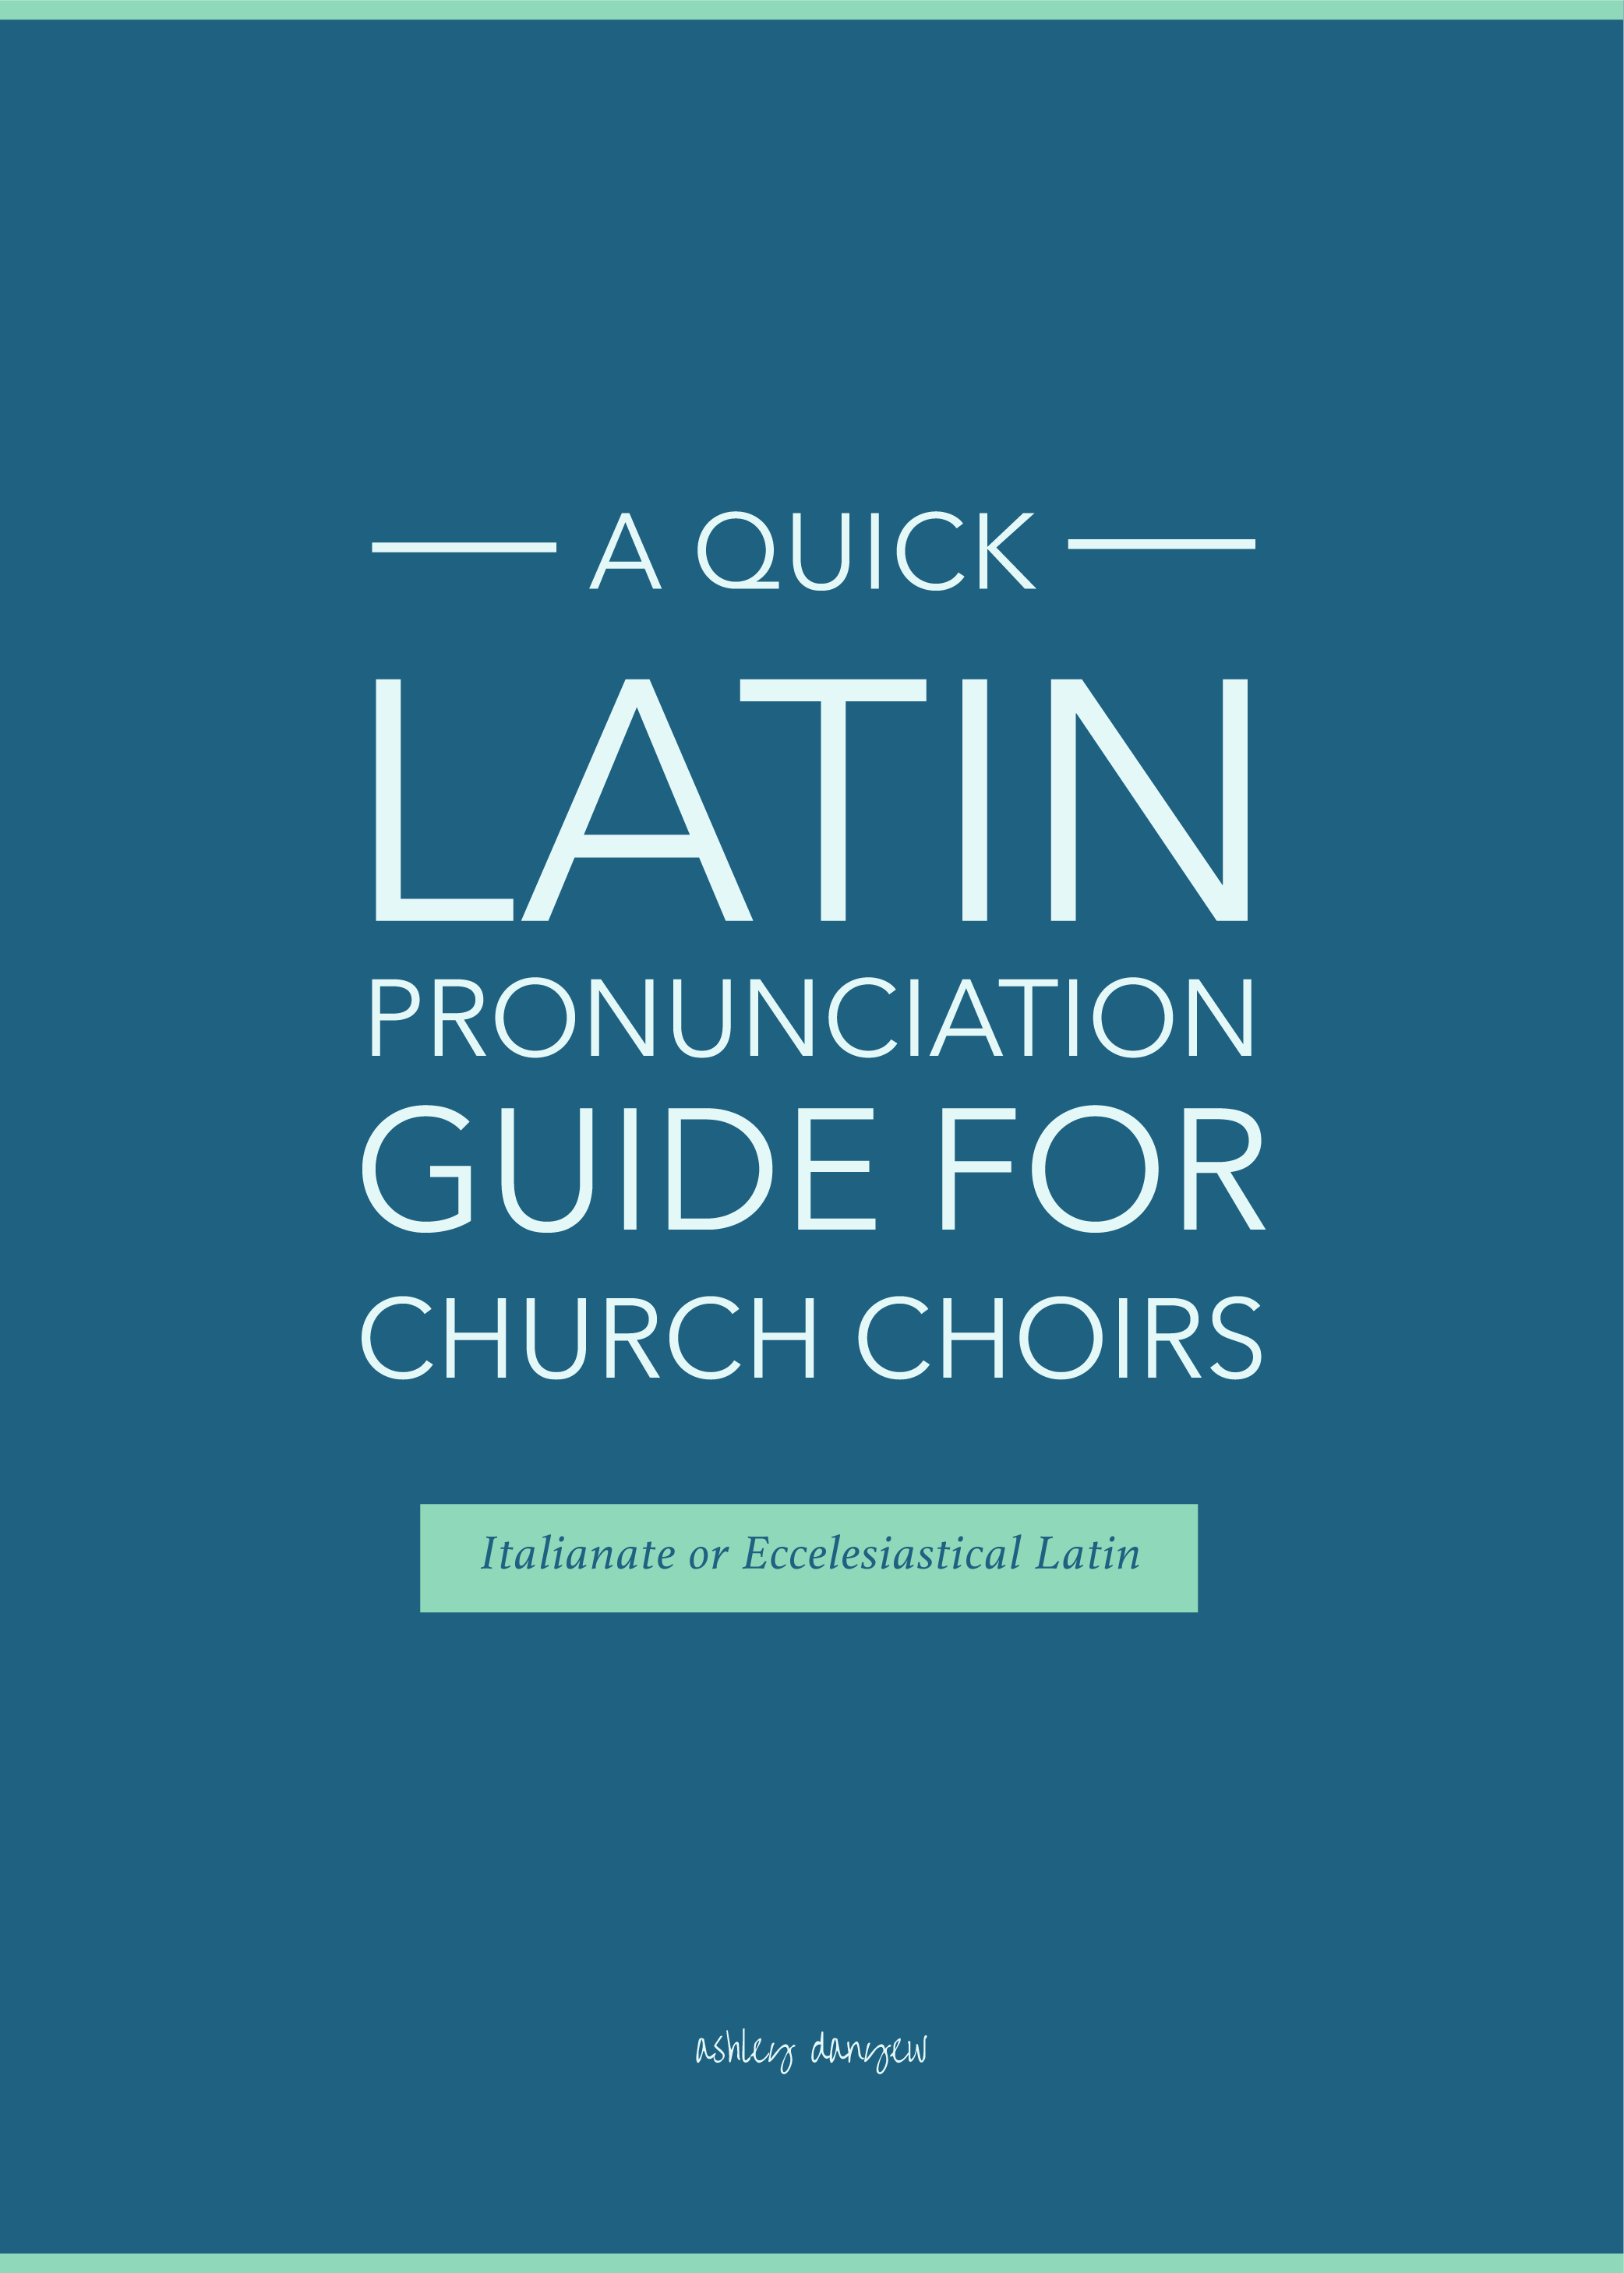 A Quick Latin Pronunciation Guide for Church Choirs-58.png